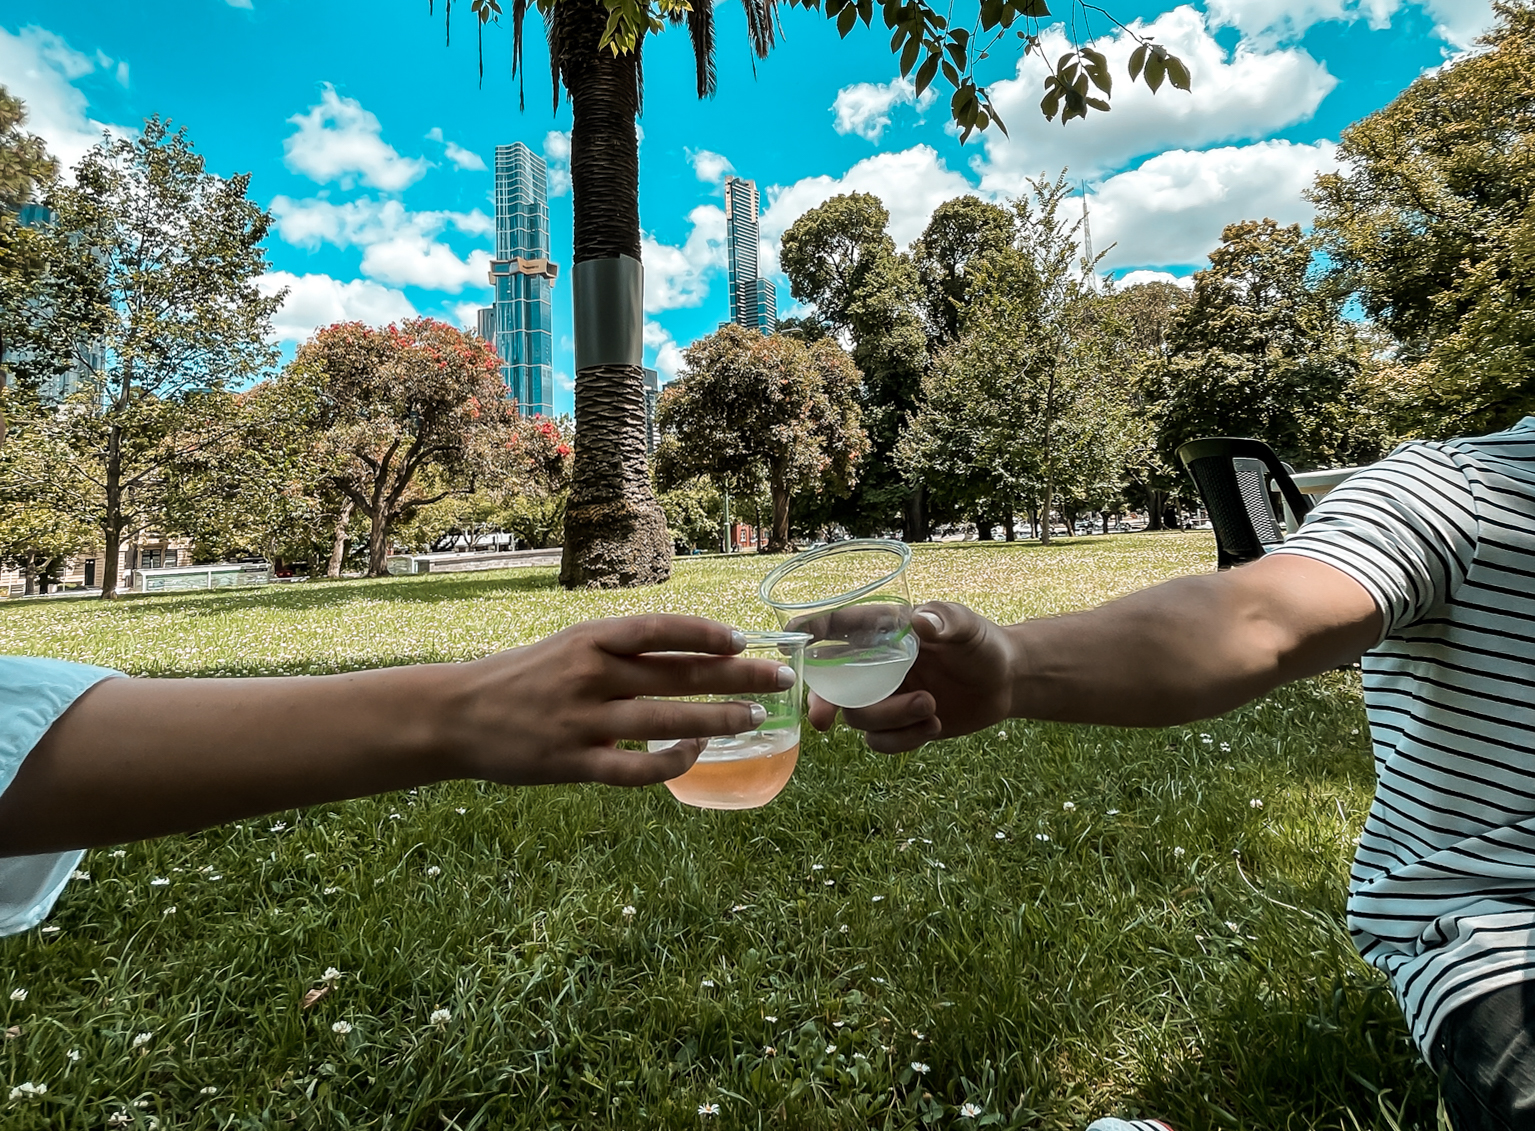 Drinks in the park